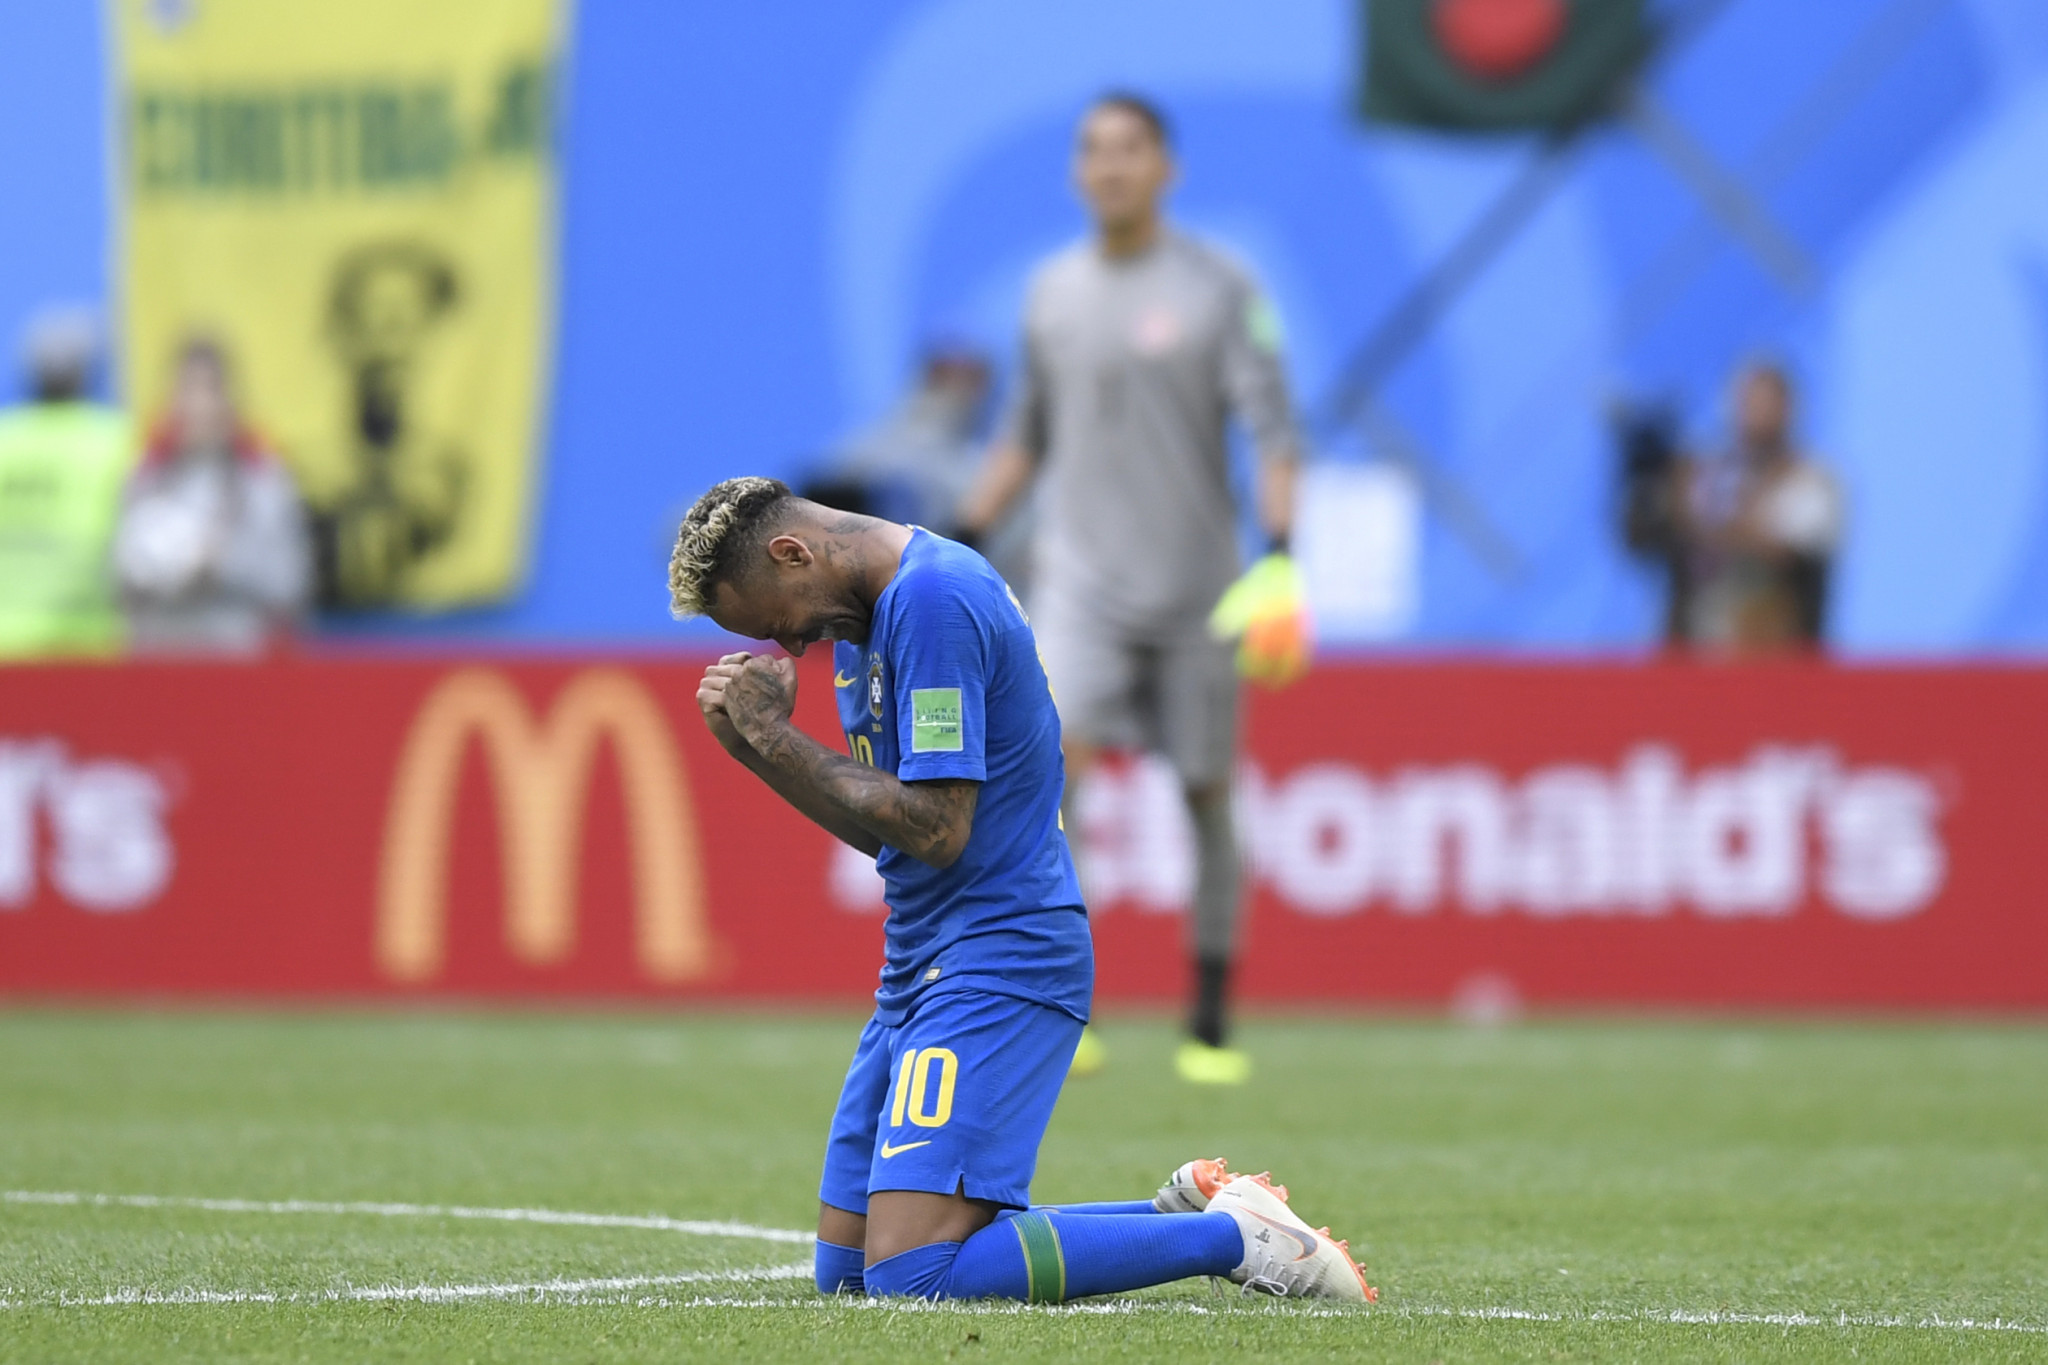 Neymar was in tears of joy after Brazil survived a scare to beat Costa Rica at the 2018 FIFA World Cup in Russia today ©Getty Images